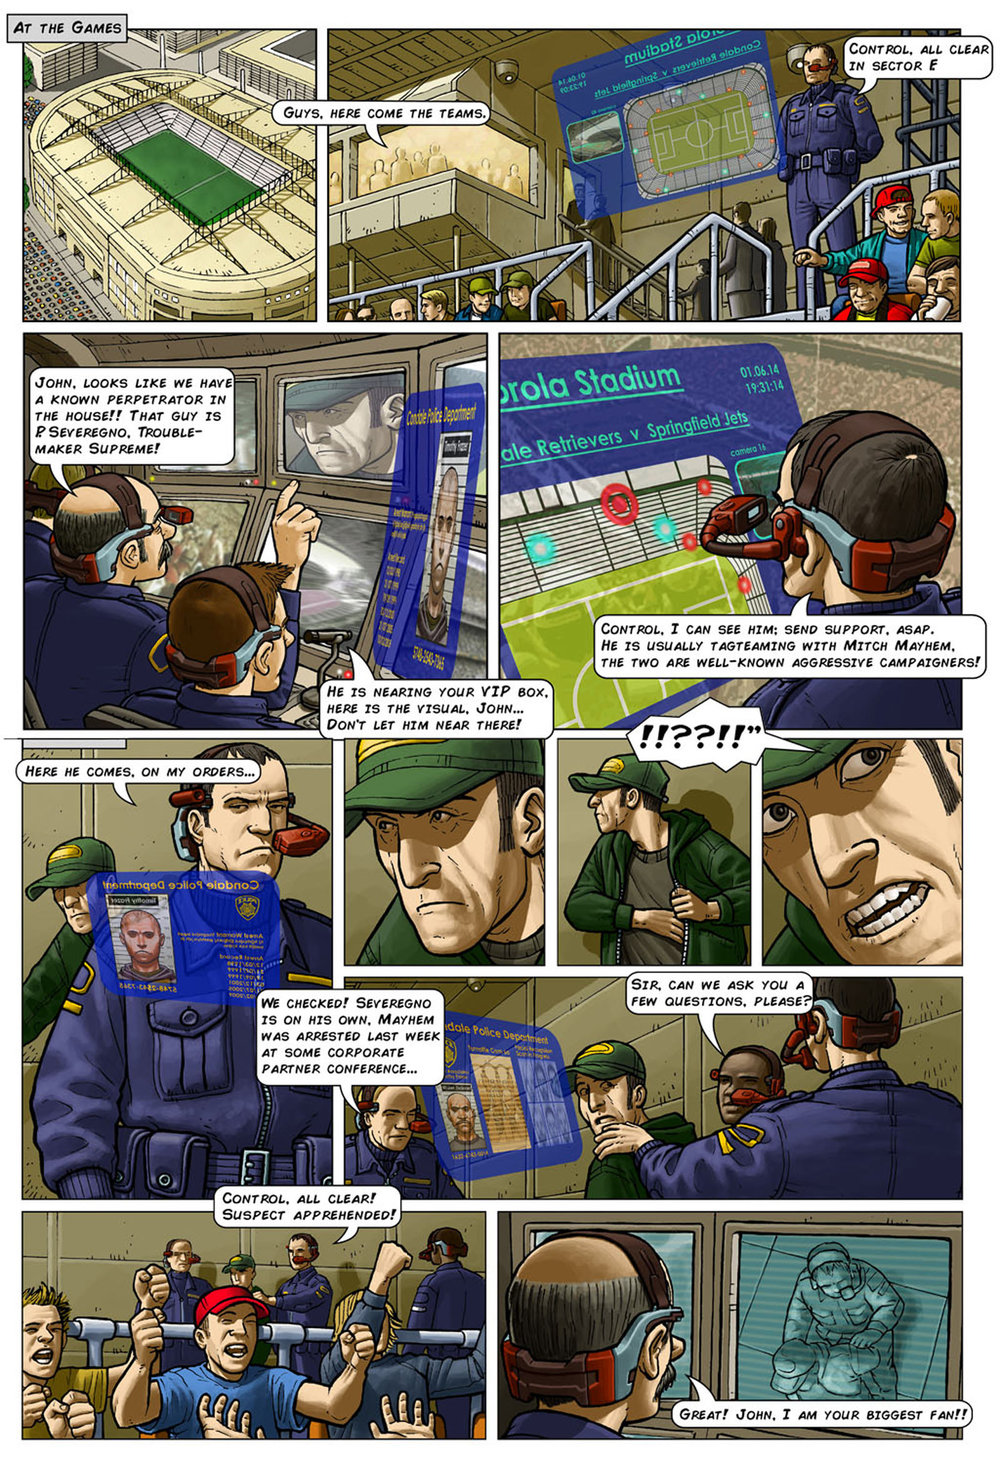 Colourised comic strip of an HMD being worn during a security and crime-prevention scenario